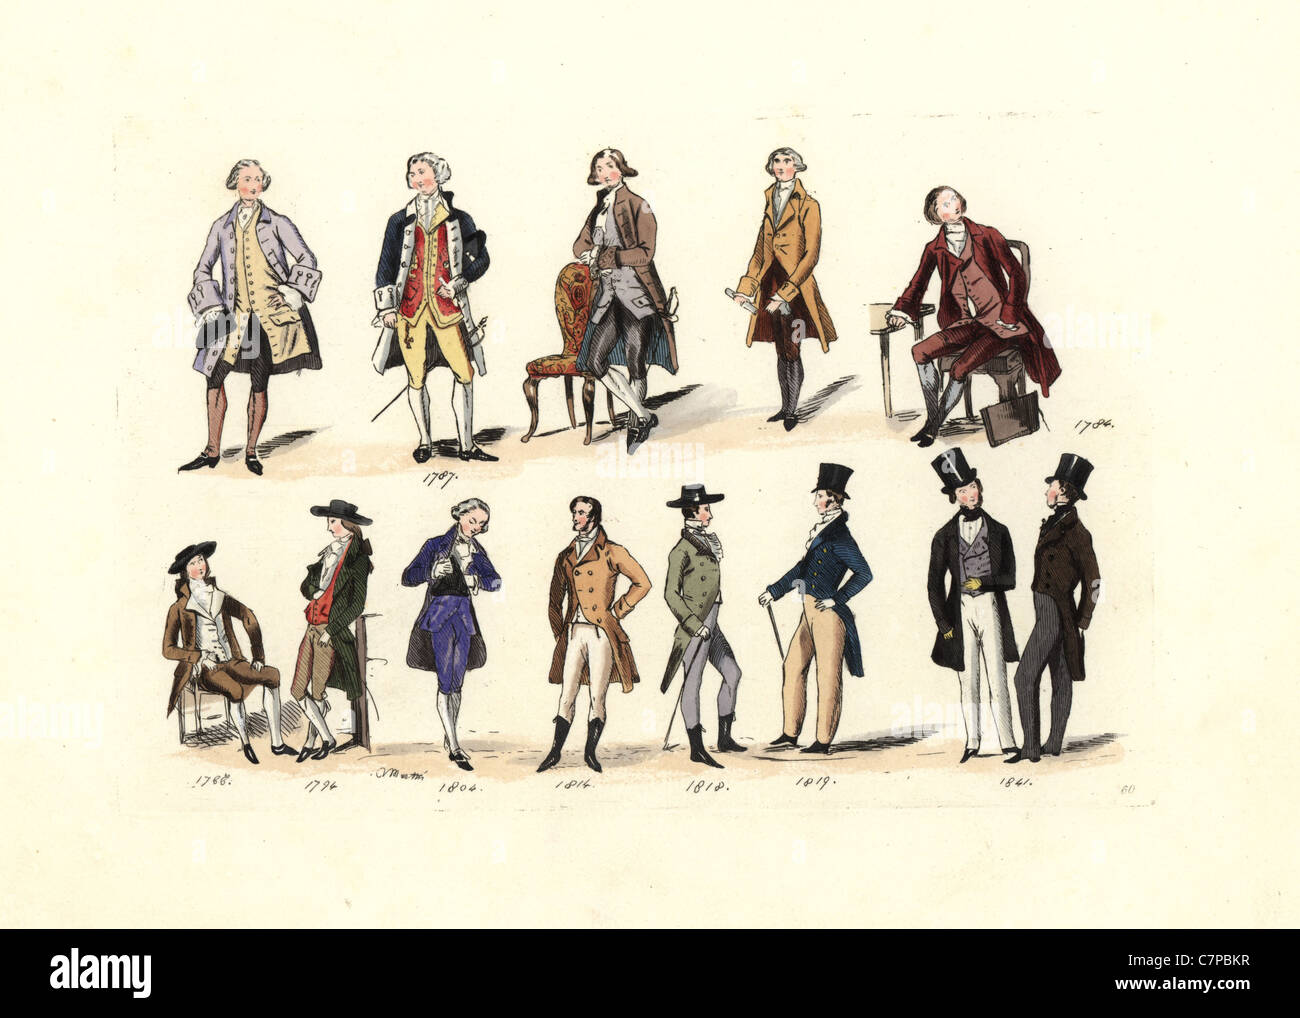 Men's fashion from 1787 to 1841, from various portraits. - Stock Image